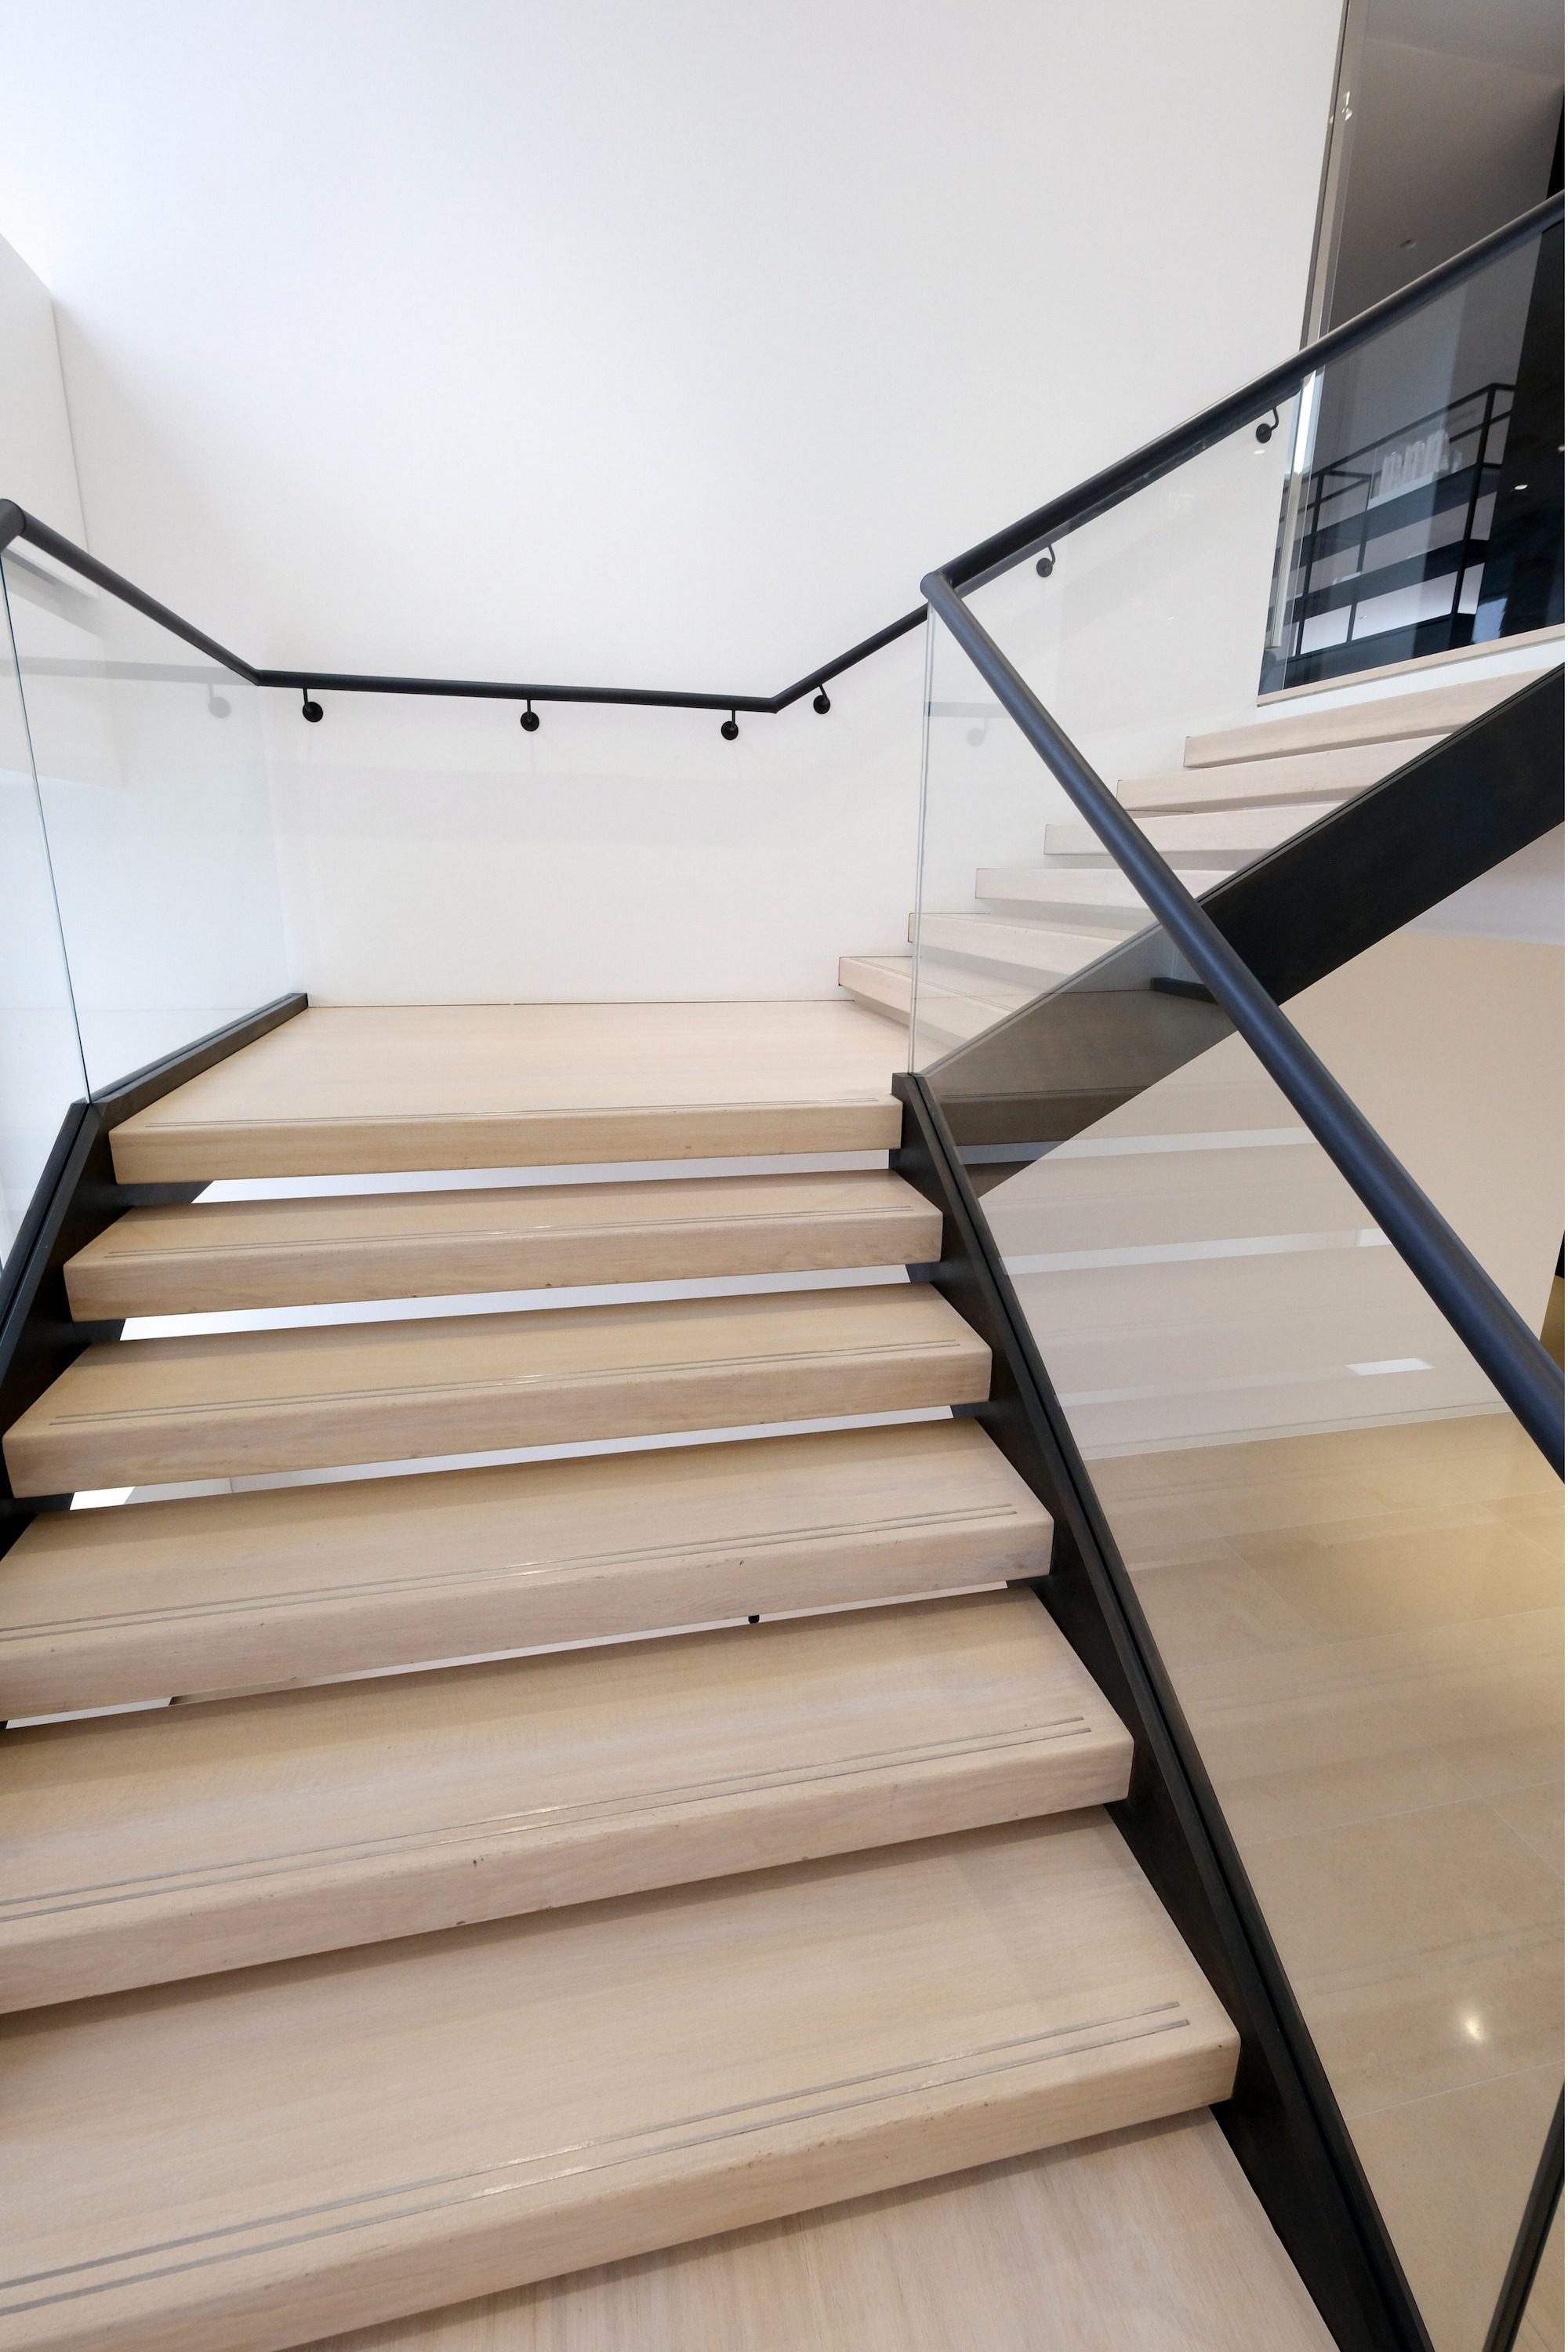 Straight fit out stair